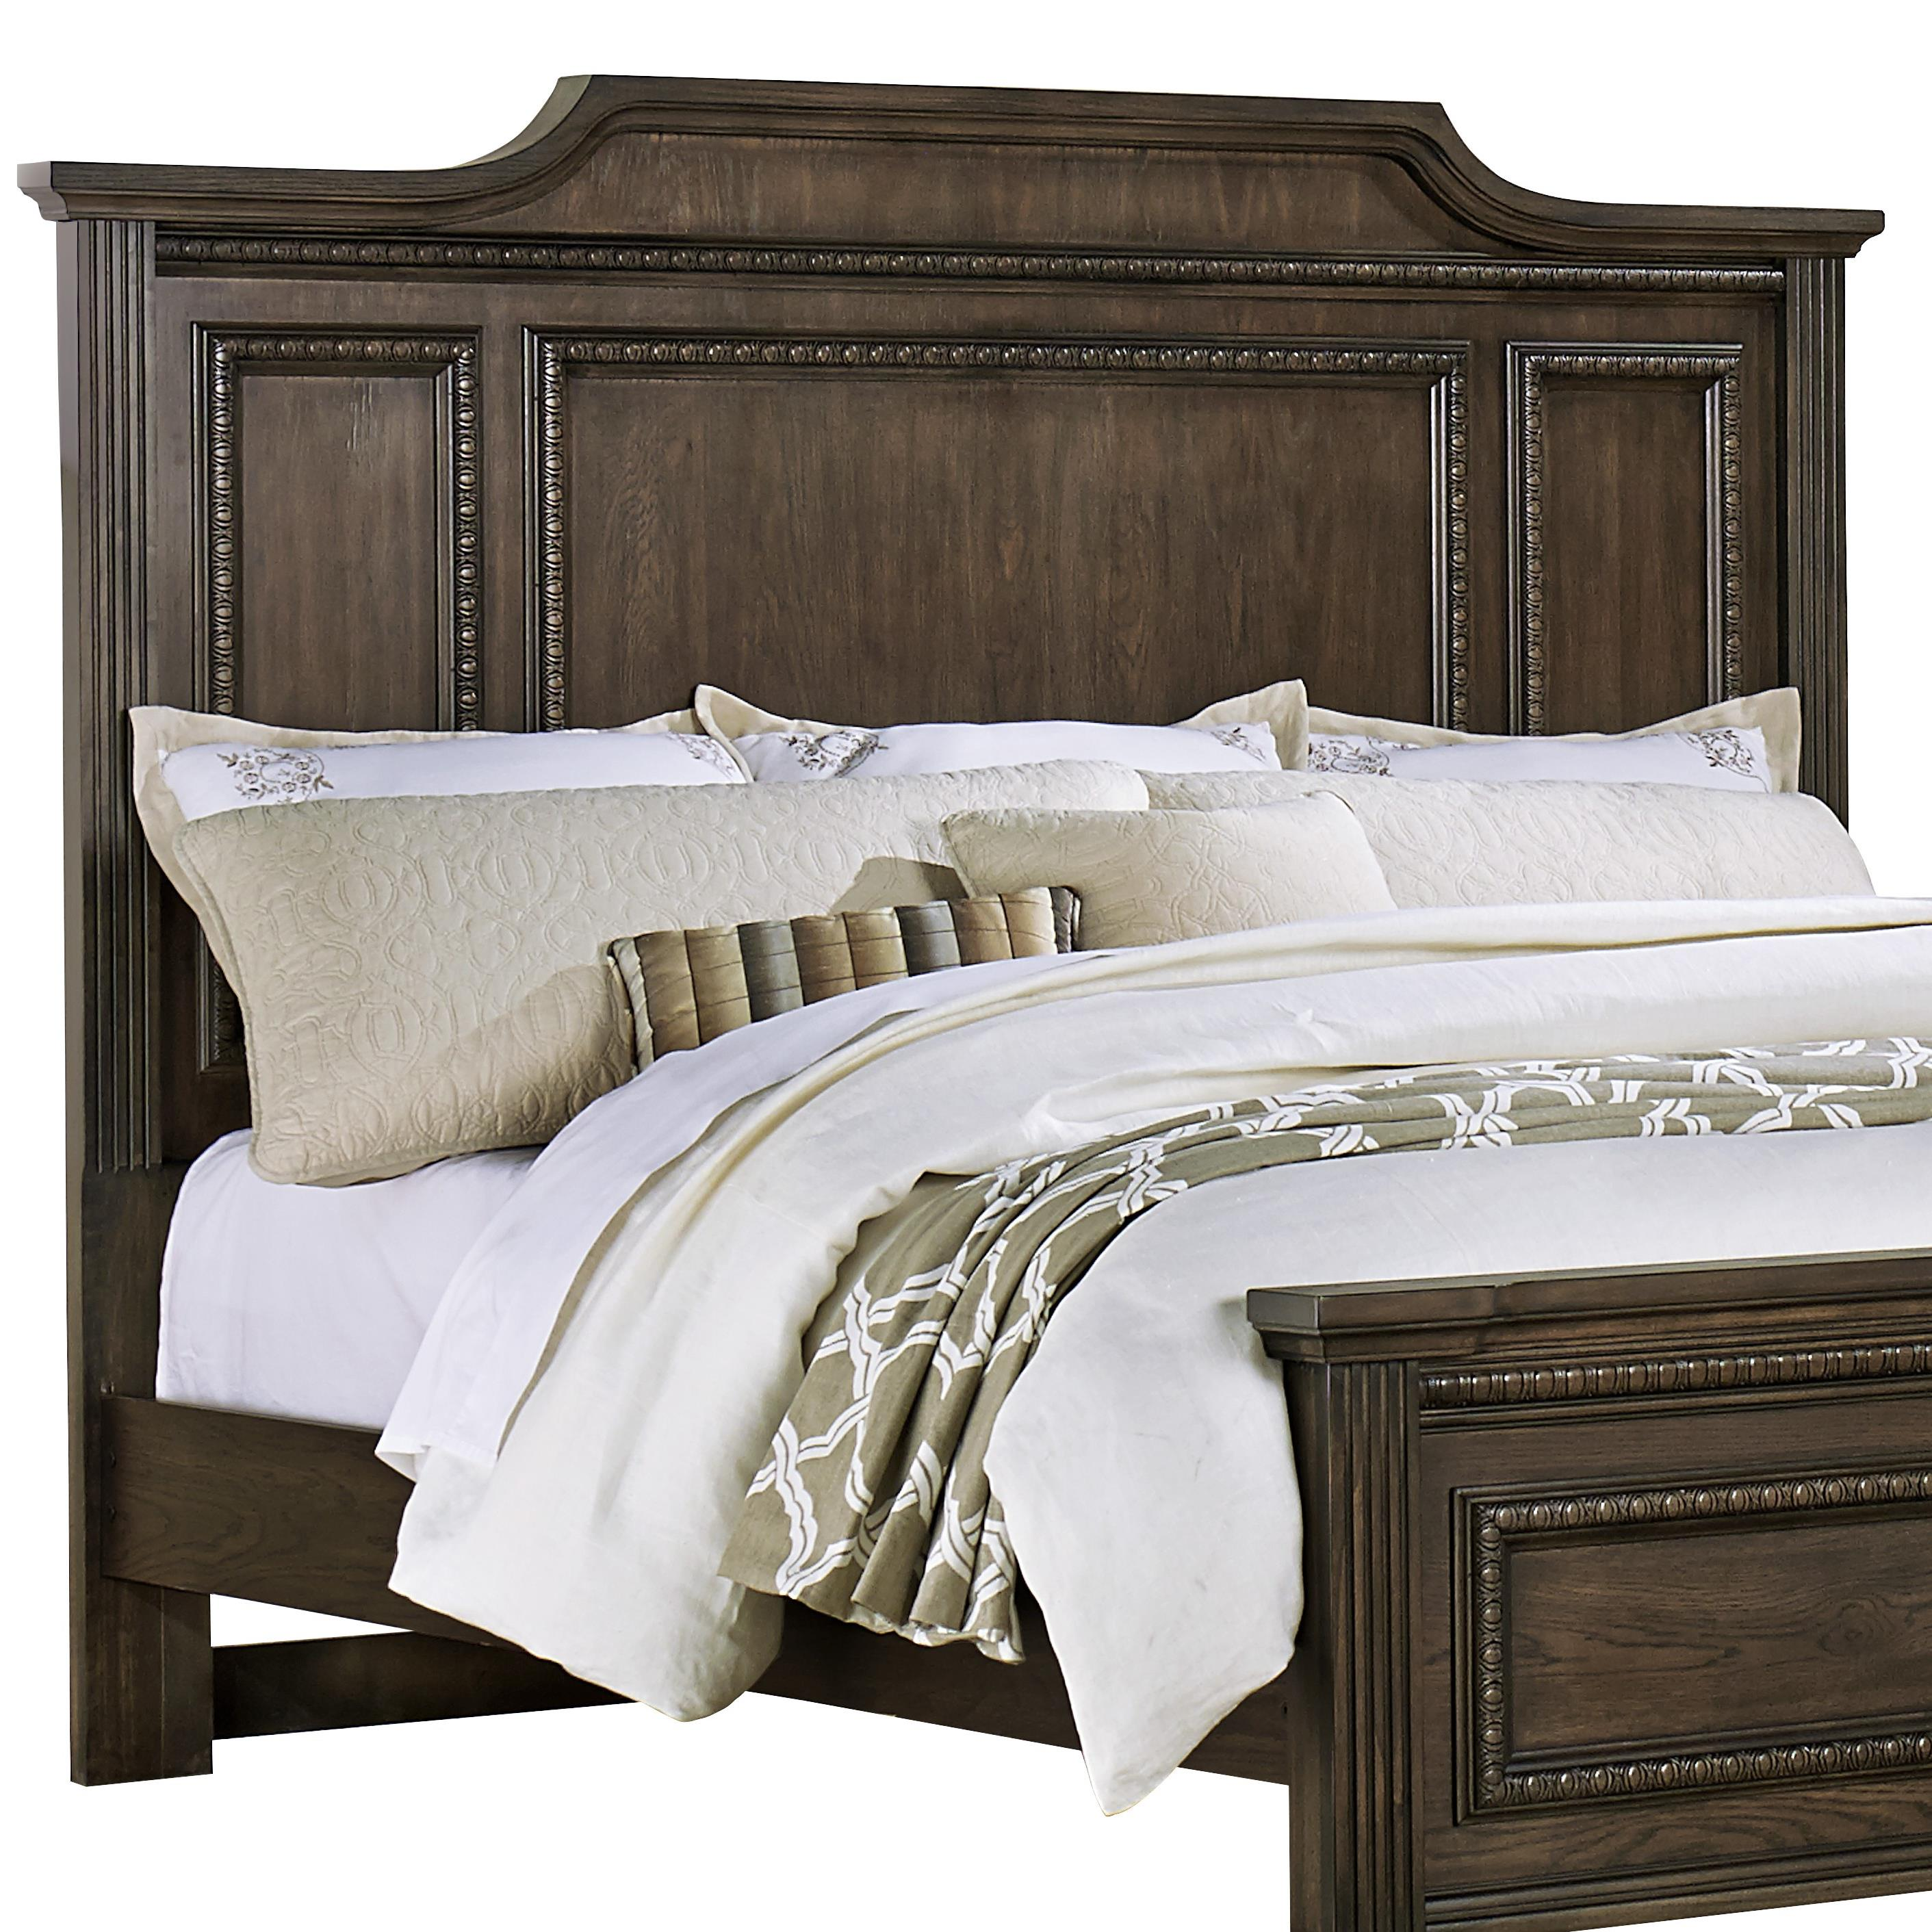 Vaughan Bassett Affinity King Mansion Headboard - Item Number: 560-668